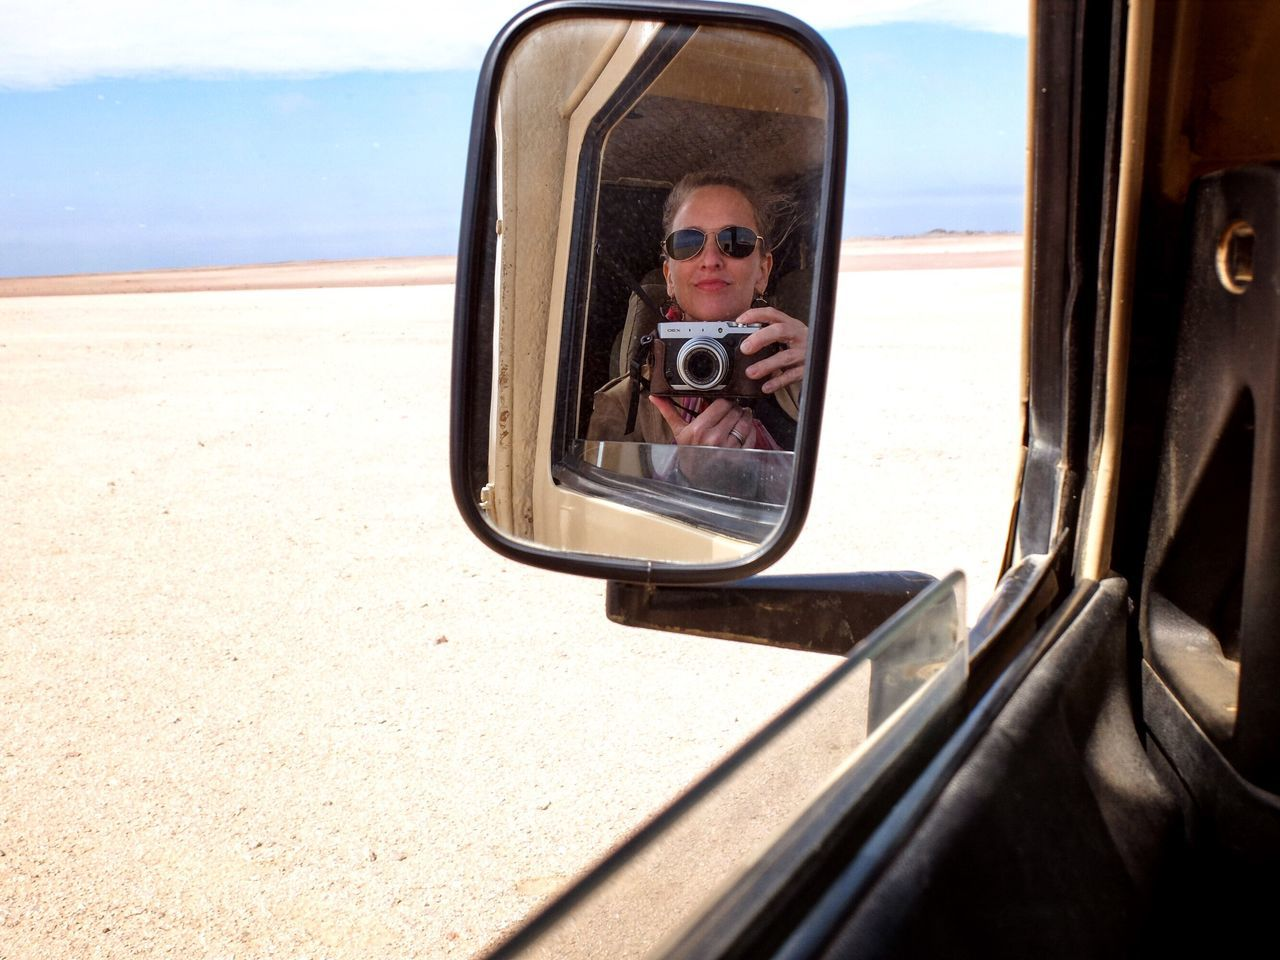 Reflection of woman photographing in side-view mirror of car